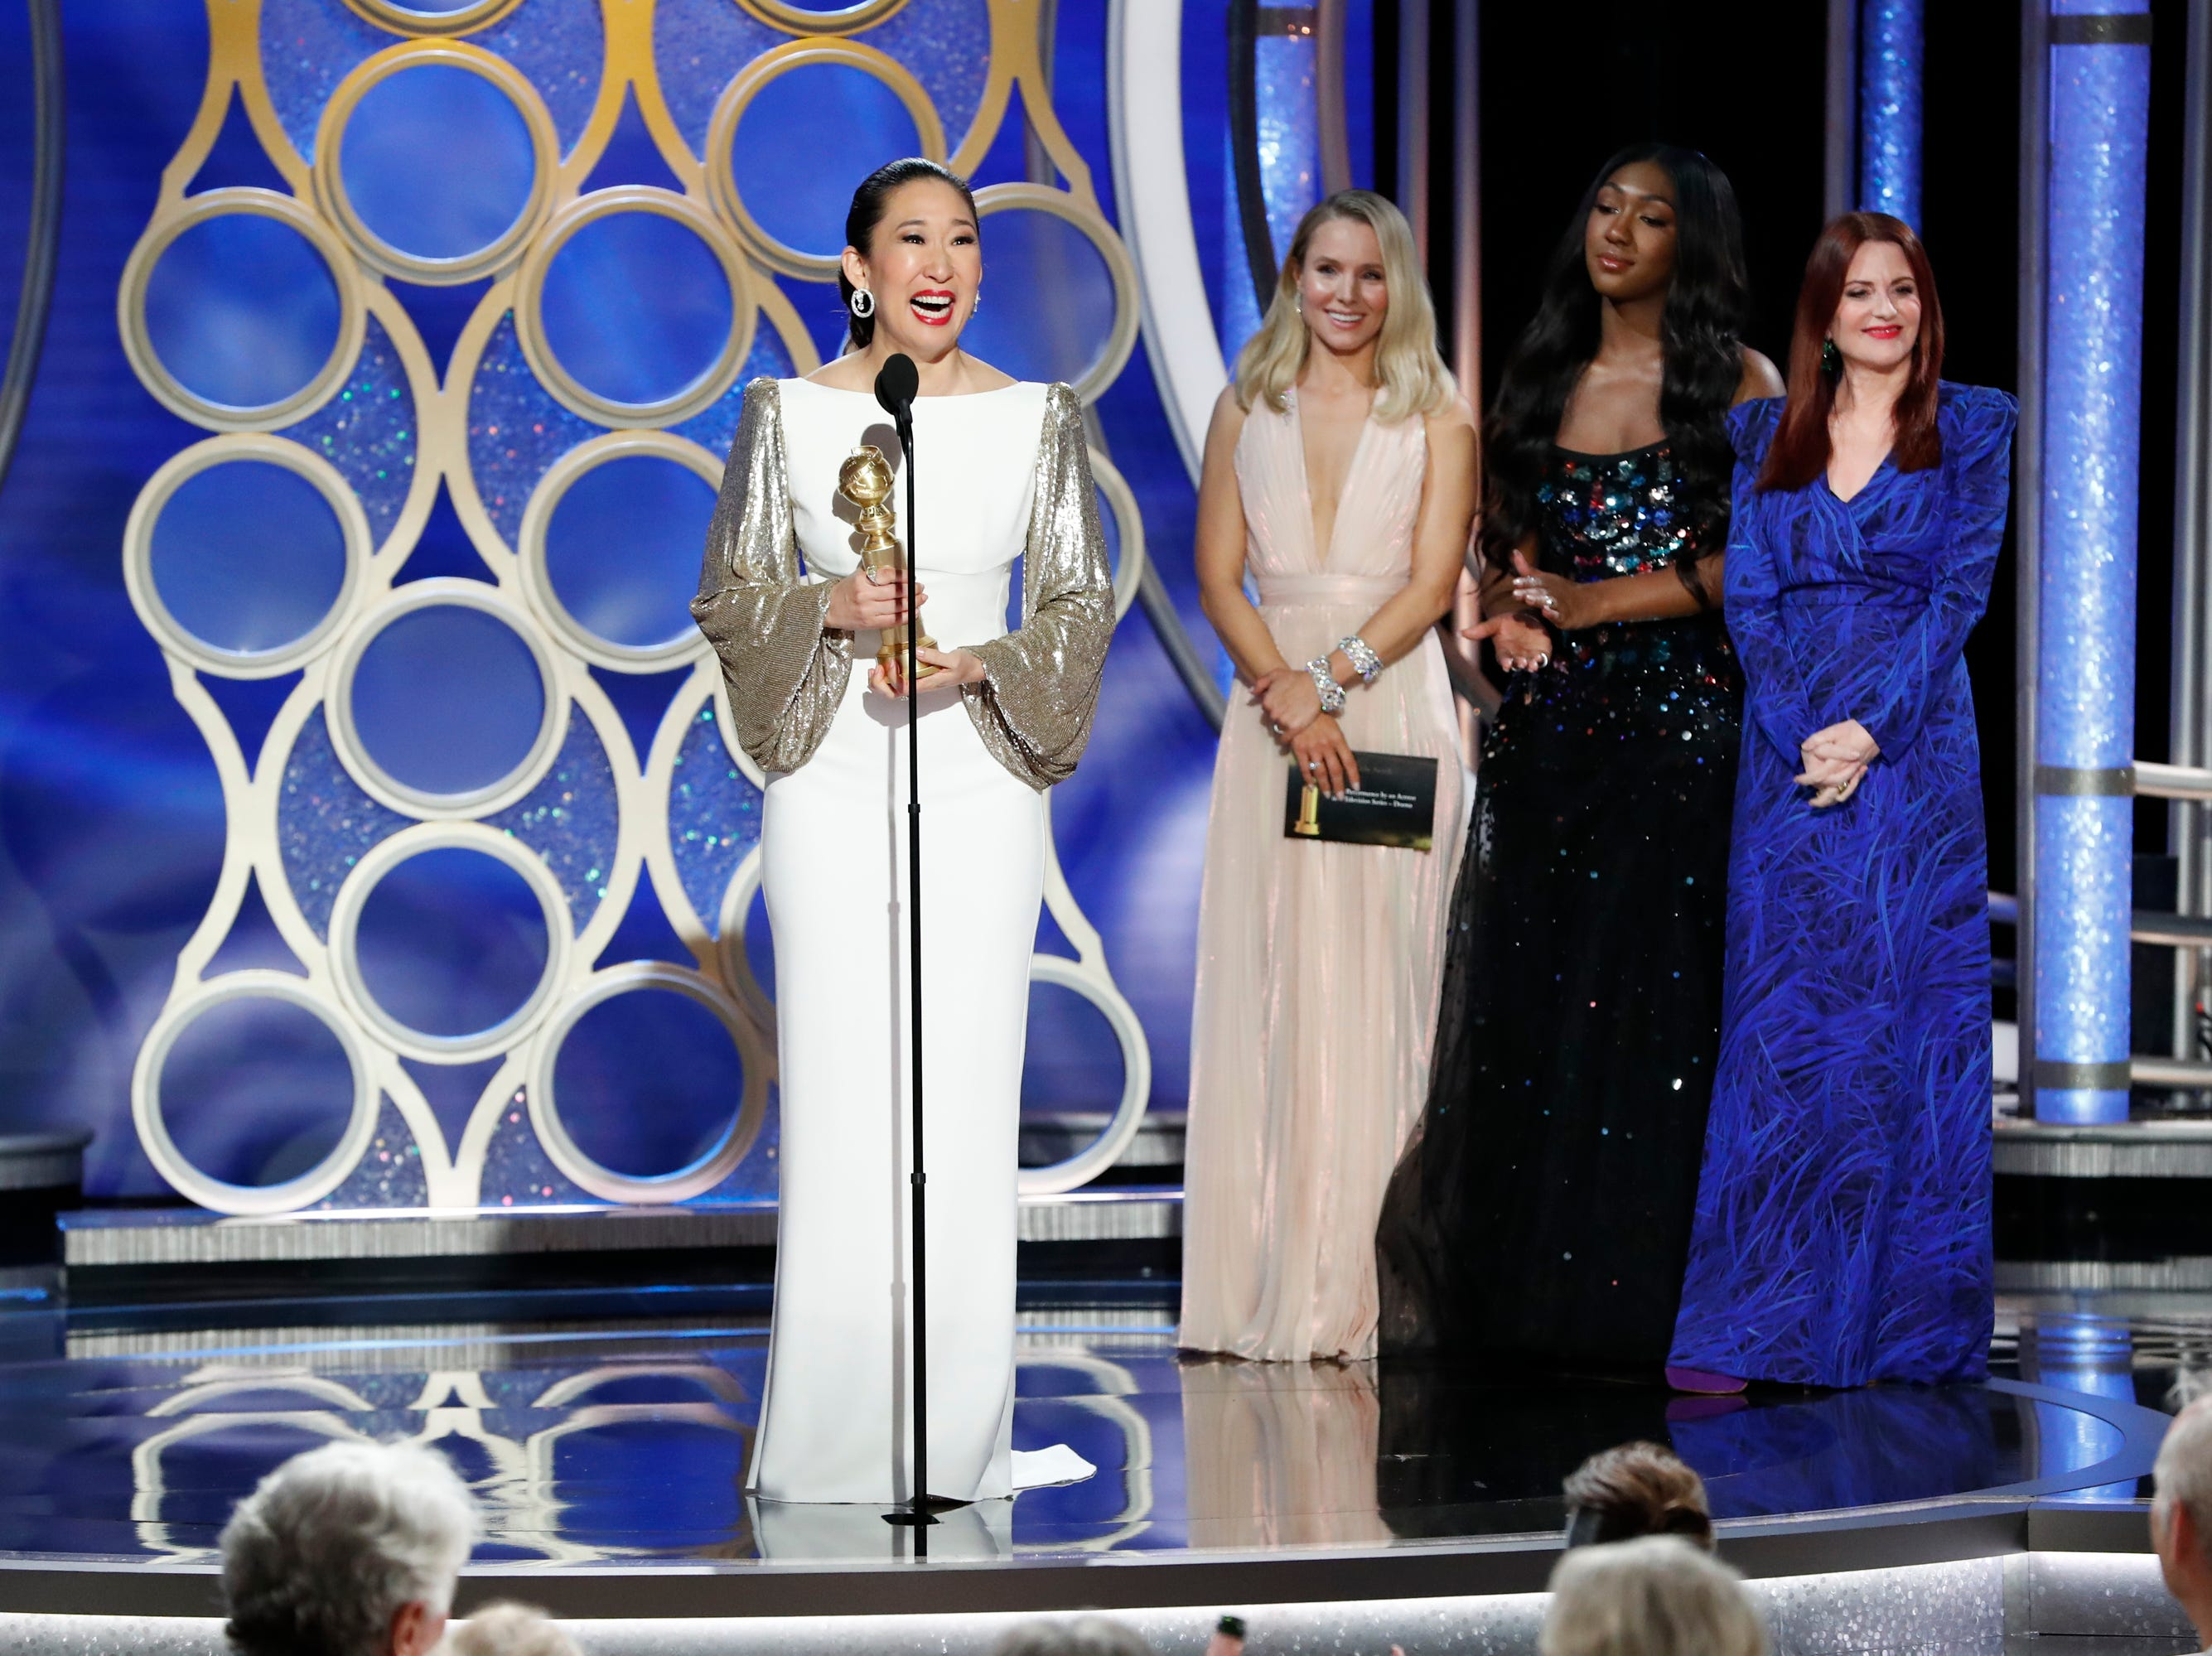 BEVERLY HILLS, CALIFORNIA - JANUARY 06: In this handout photo provided by NBCUniversal, Sandra Oh from Killing Eve accept the Best Performance by an Actress in a Television Series  Drama award  onstage during the 76th Annual Golden Globe Awards at The Beverly Hilton Hotel on January 06, 2019 in Beverly Hills, California.  (Photo by Paul Drinkwater/NBCUniversal via Getty Images) ORG XMIT: 775268380 ORIG FILE ID: 1078367162